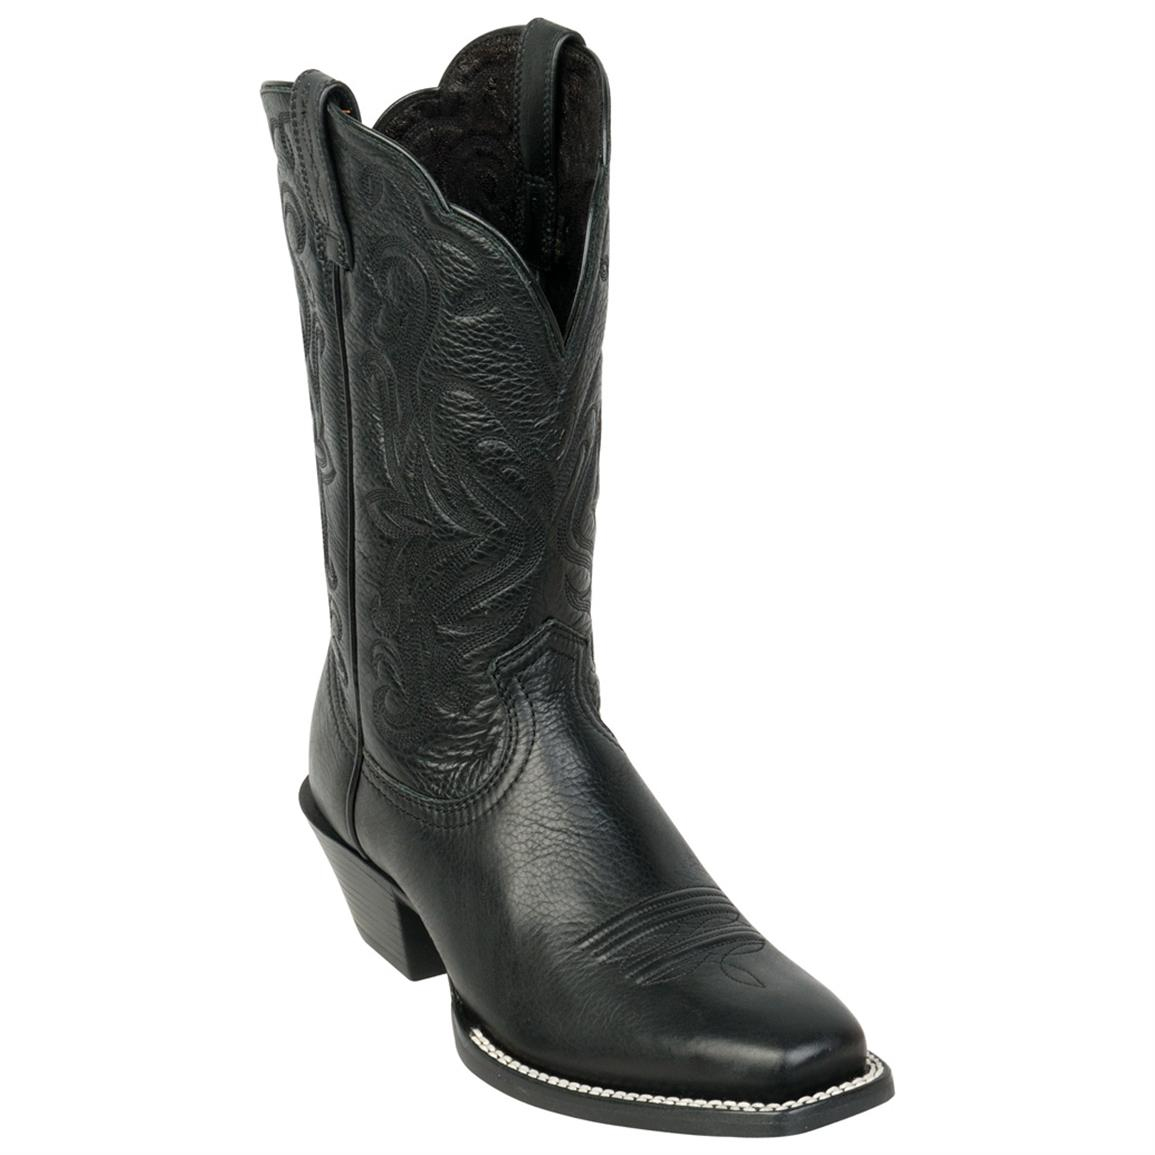 Black Ariat Boots uO3Z8mj7